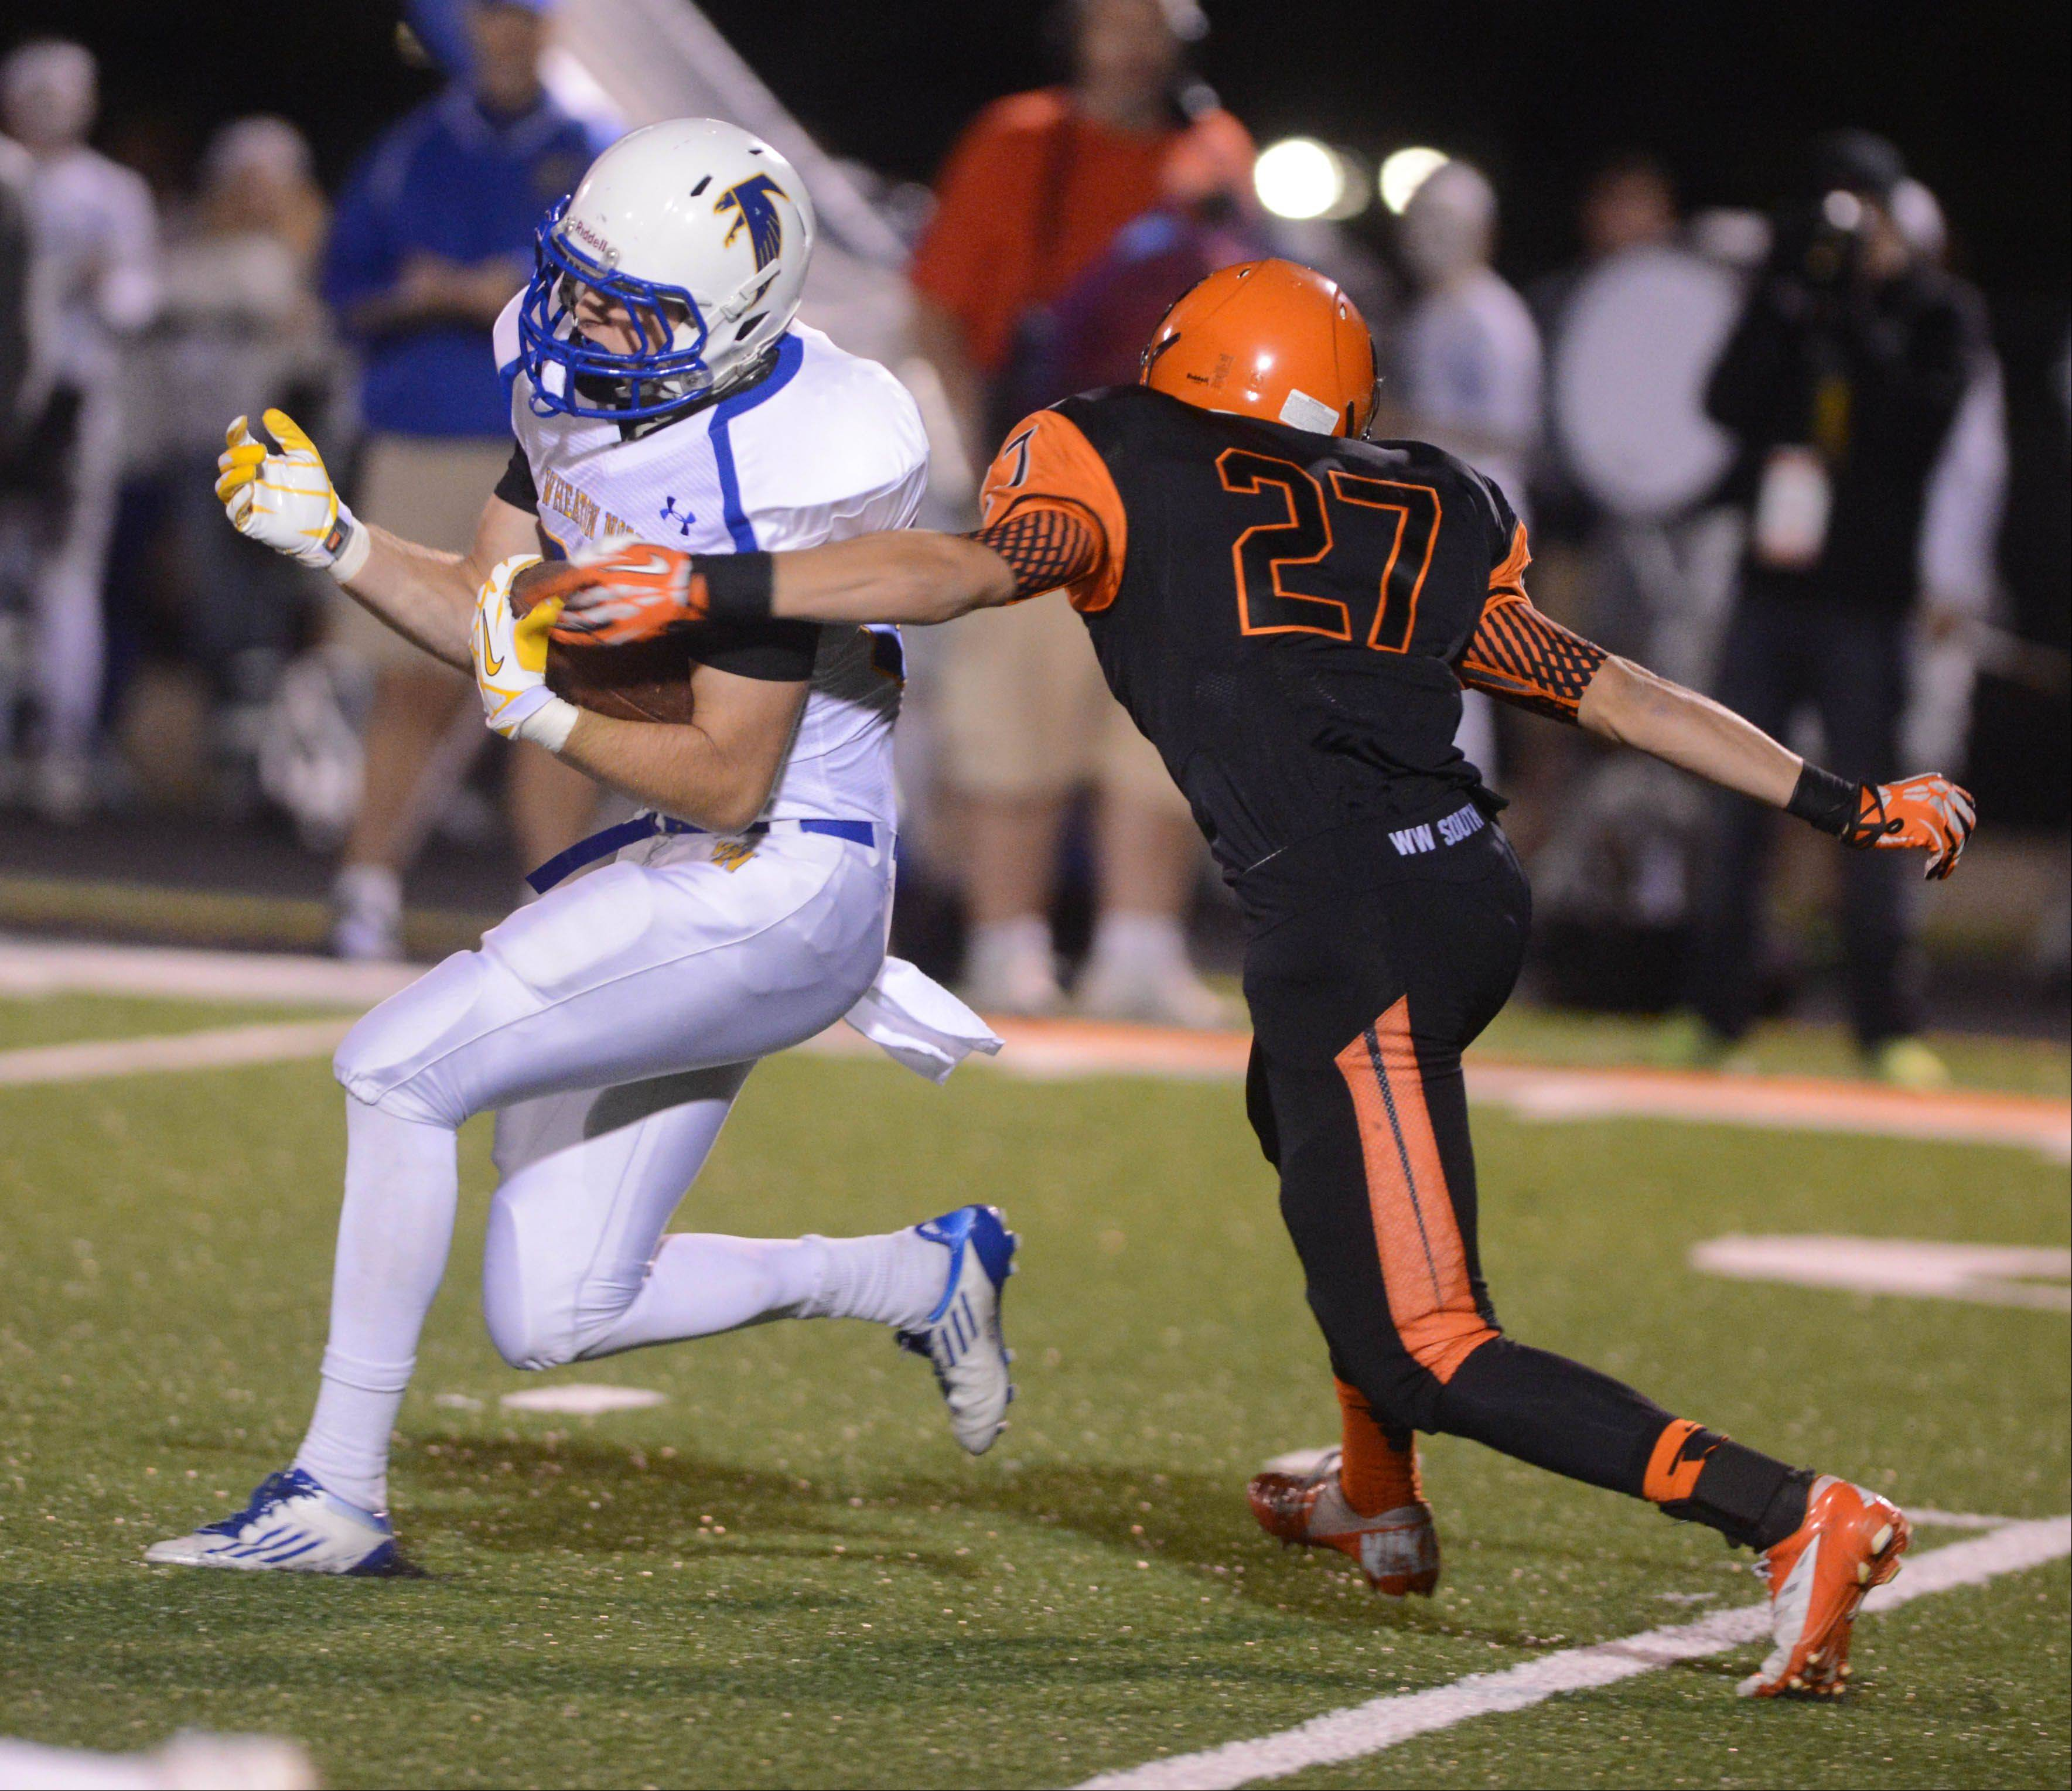 Matt Biegalski of Wheaton North is pulled down by Parker Fuson of Wheaton Warrenville South.